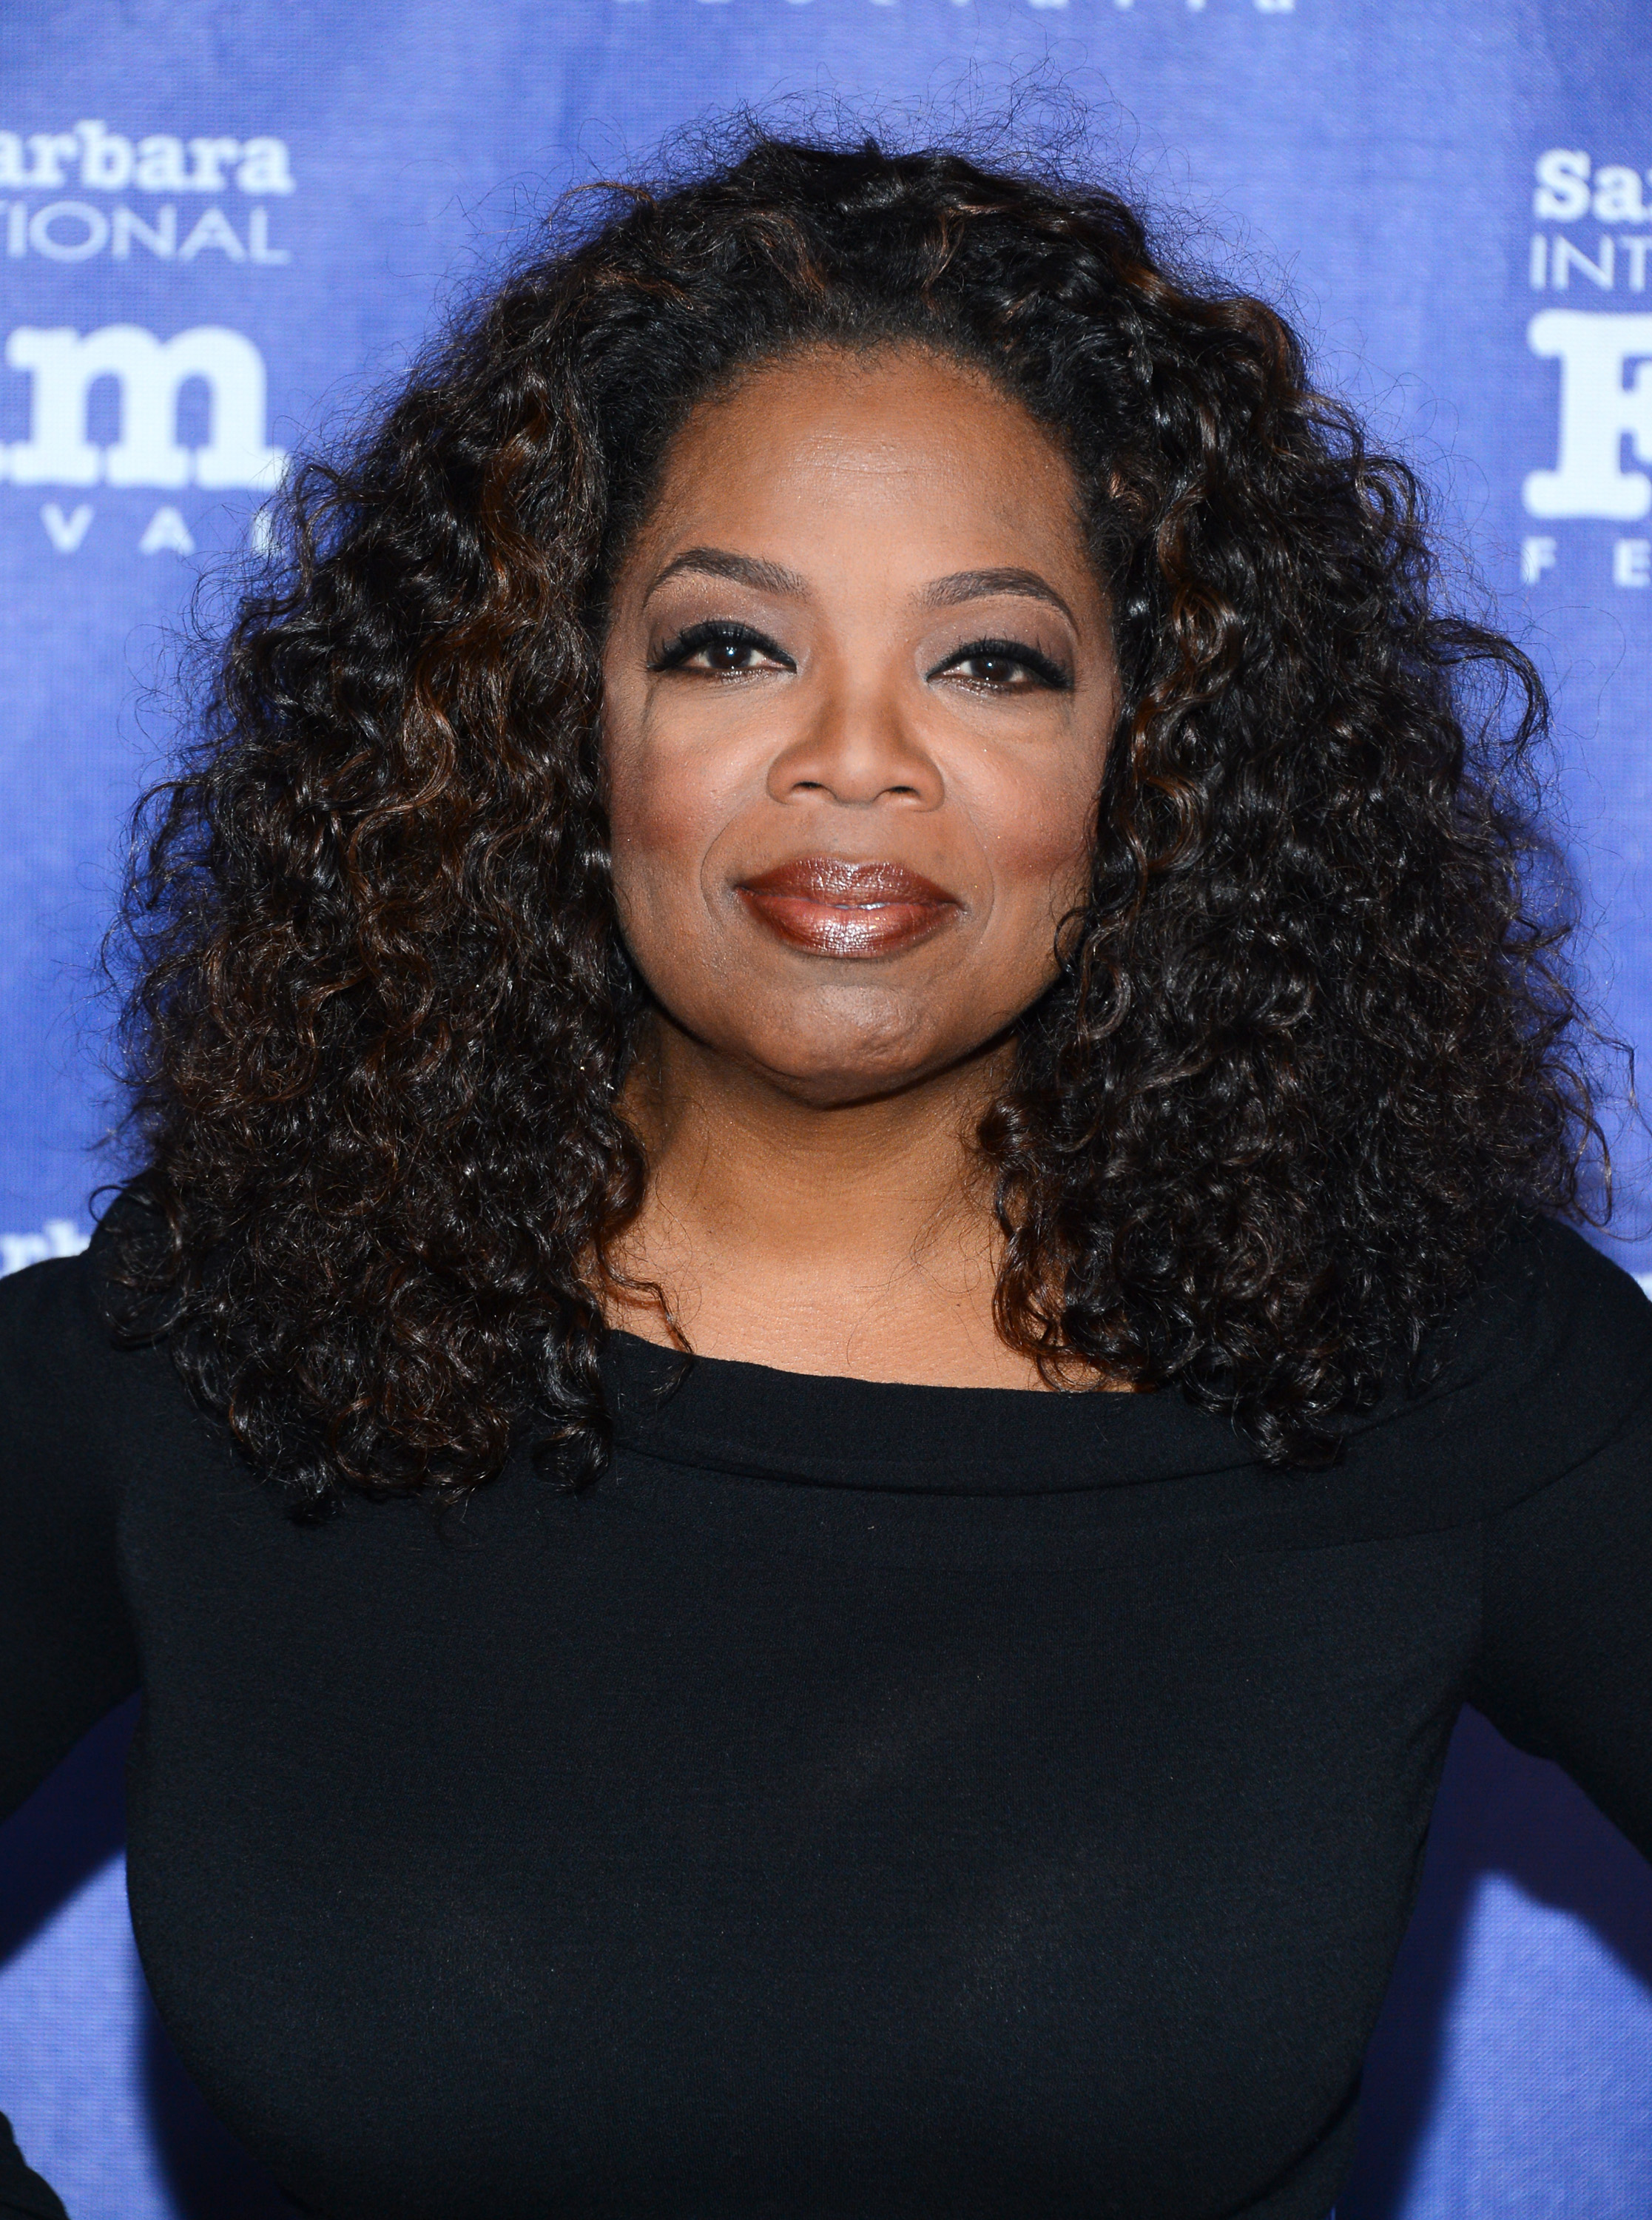 Oprah Winfrey attends the 29th Santa Barbara International Film Festival Montecito at the Arlington Theatre on Feb 5, 2014 in Santa Barbara, Calif.